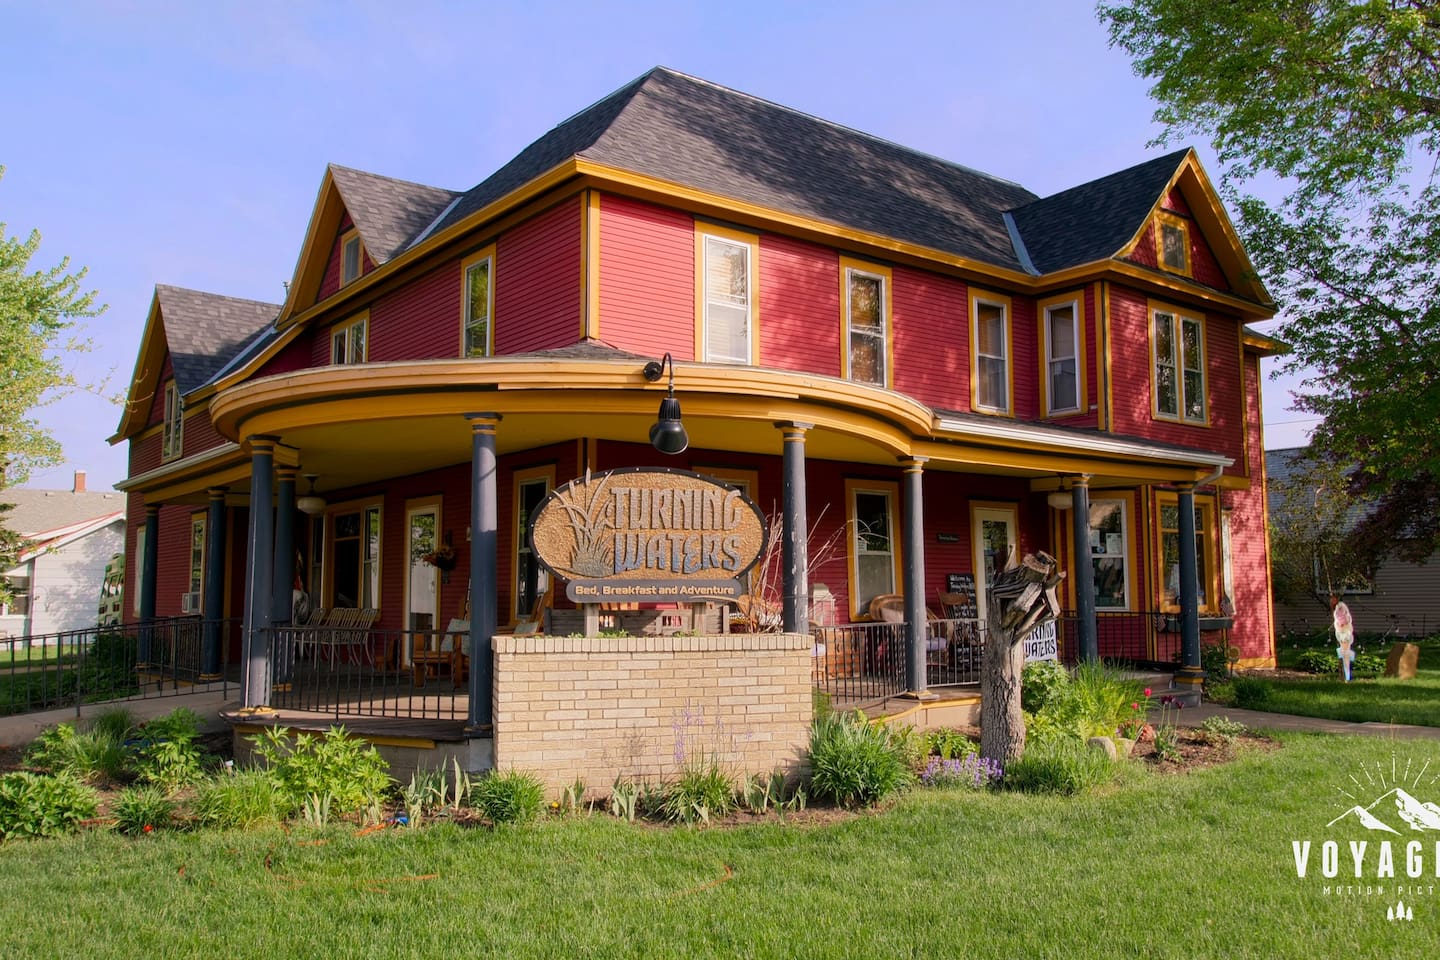 Turning Waters Bed, Breakfast, Adventure & Brewery (located in the back yard)